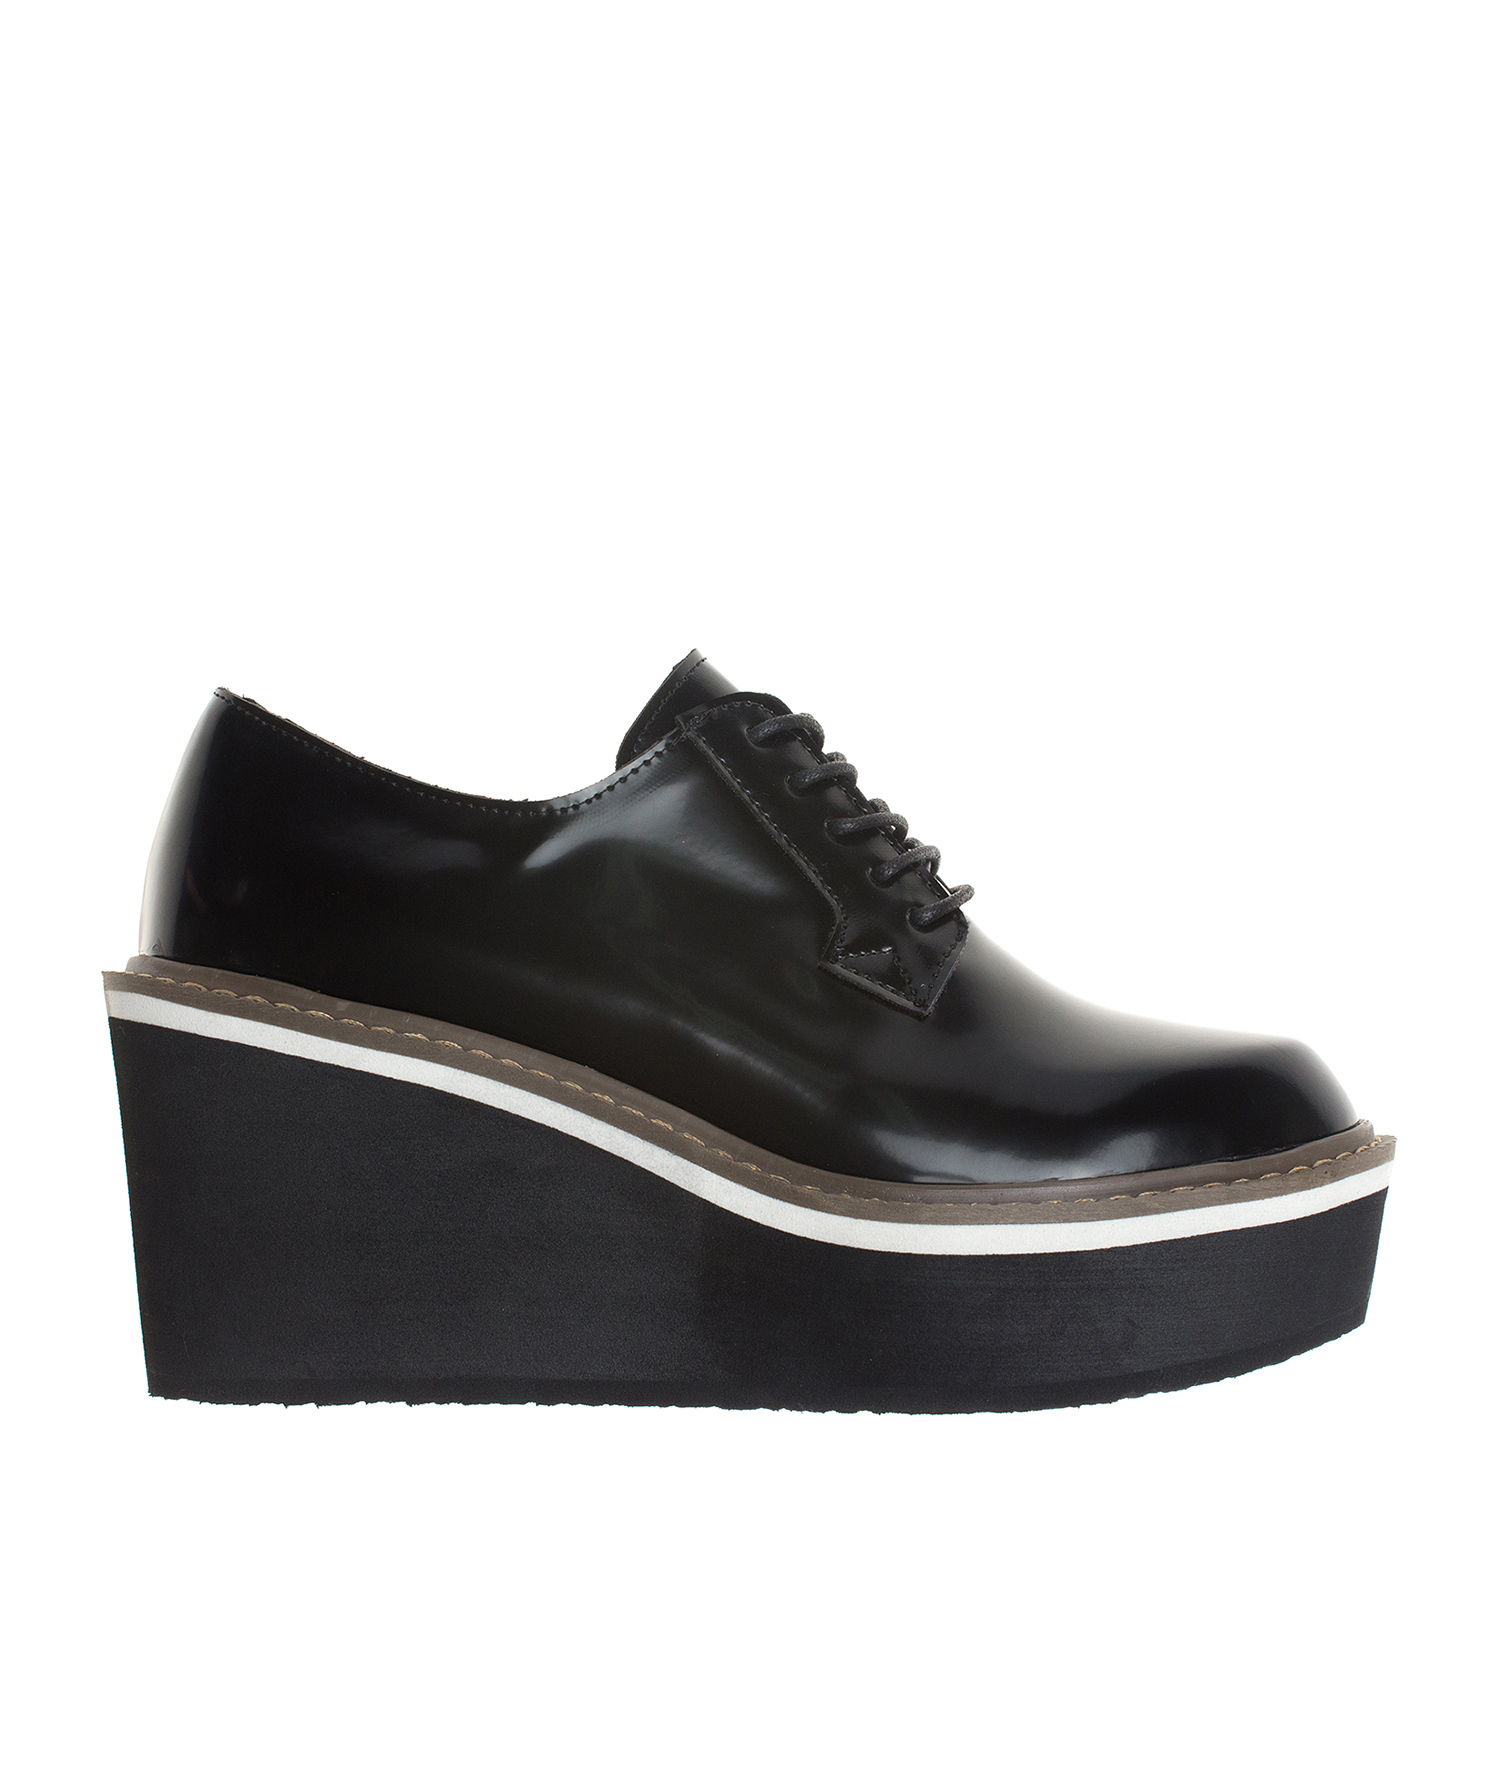 Black Platform Wedge Oxford Creeper Shoes